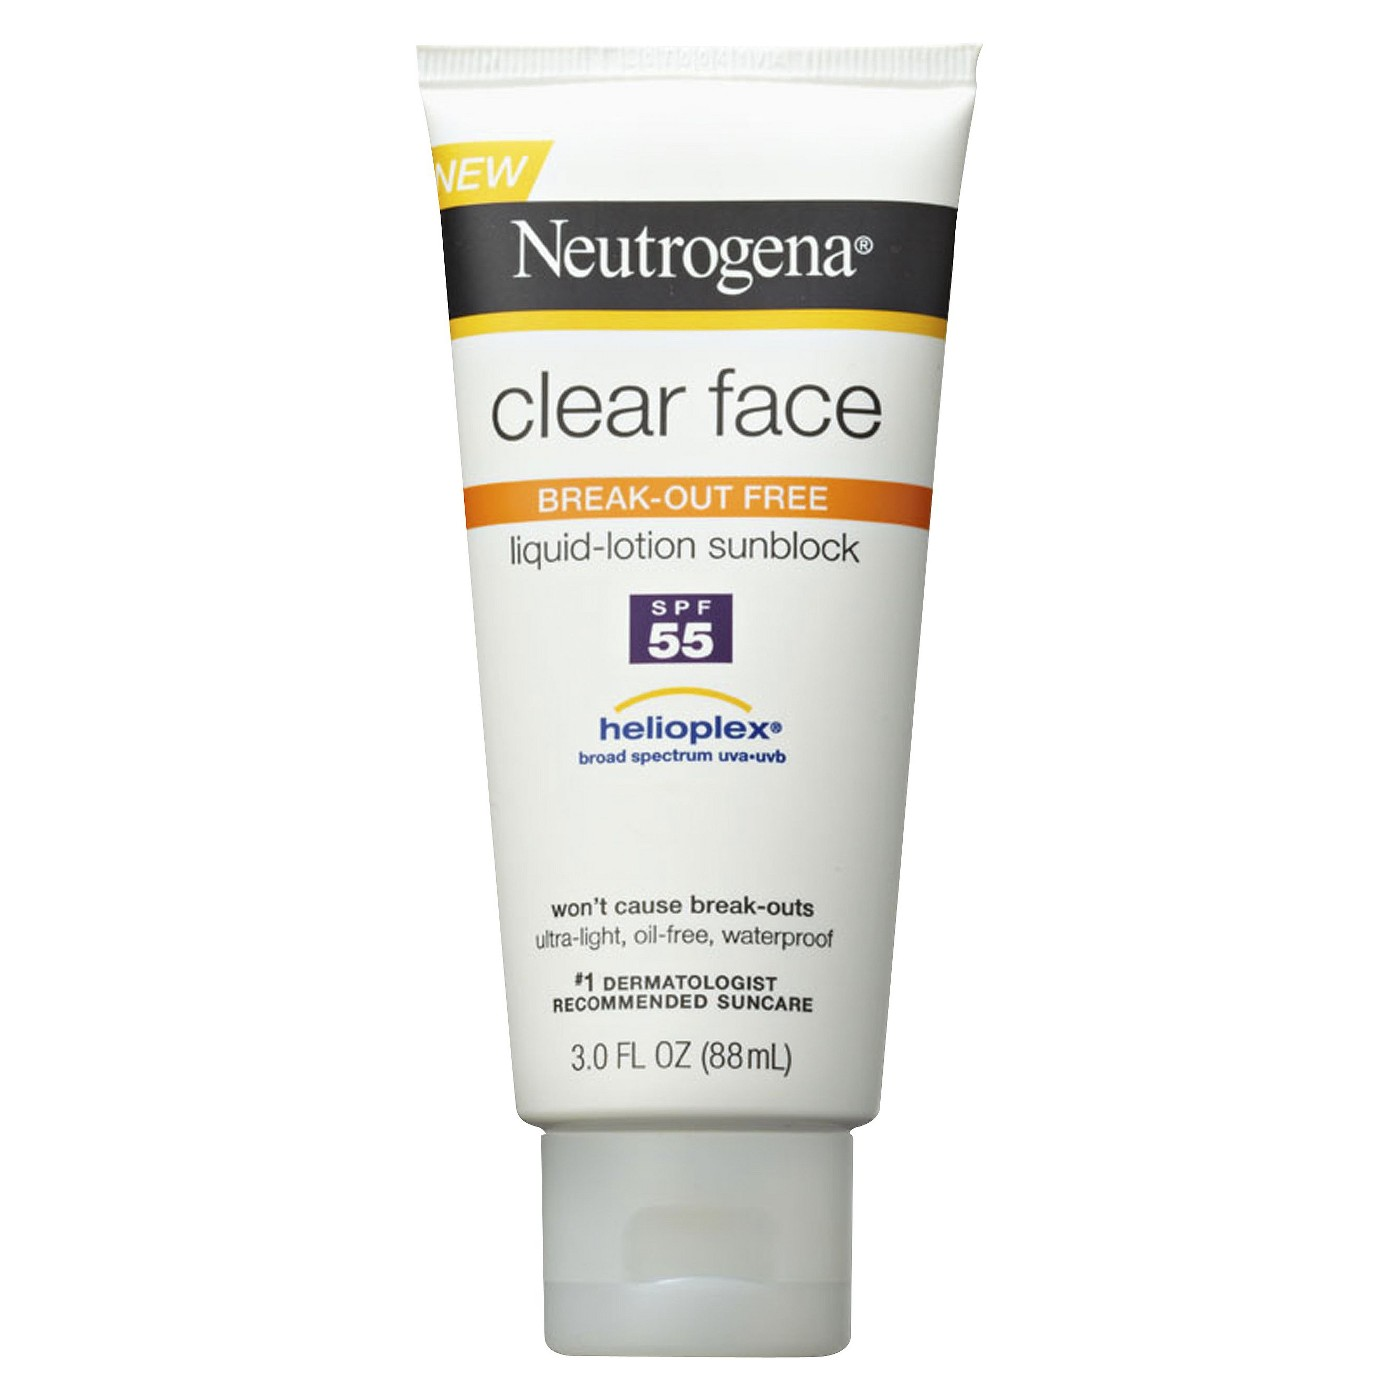 Neutrogena Clear Face Sunscreen Lotion  - SPF 55 - 3oz - image 1 of 5